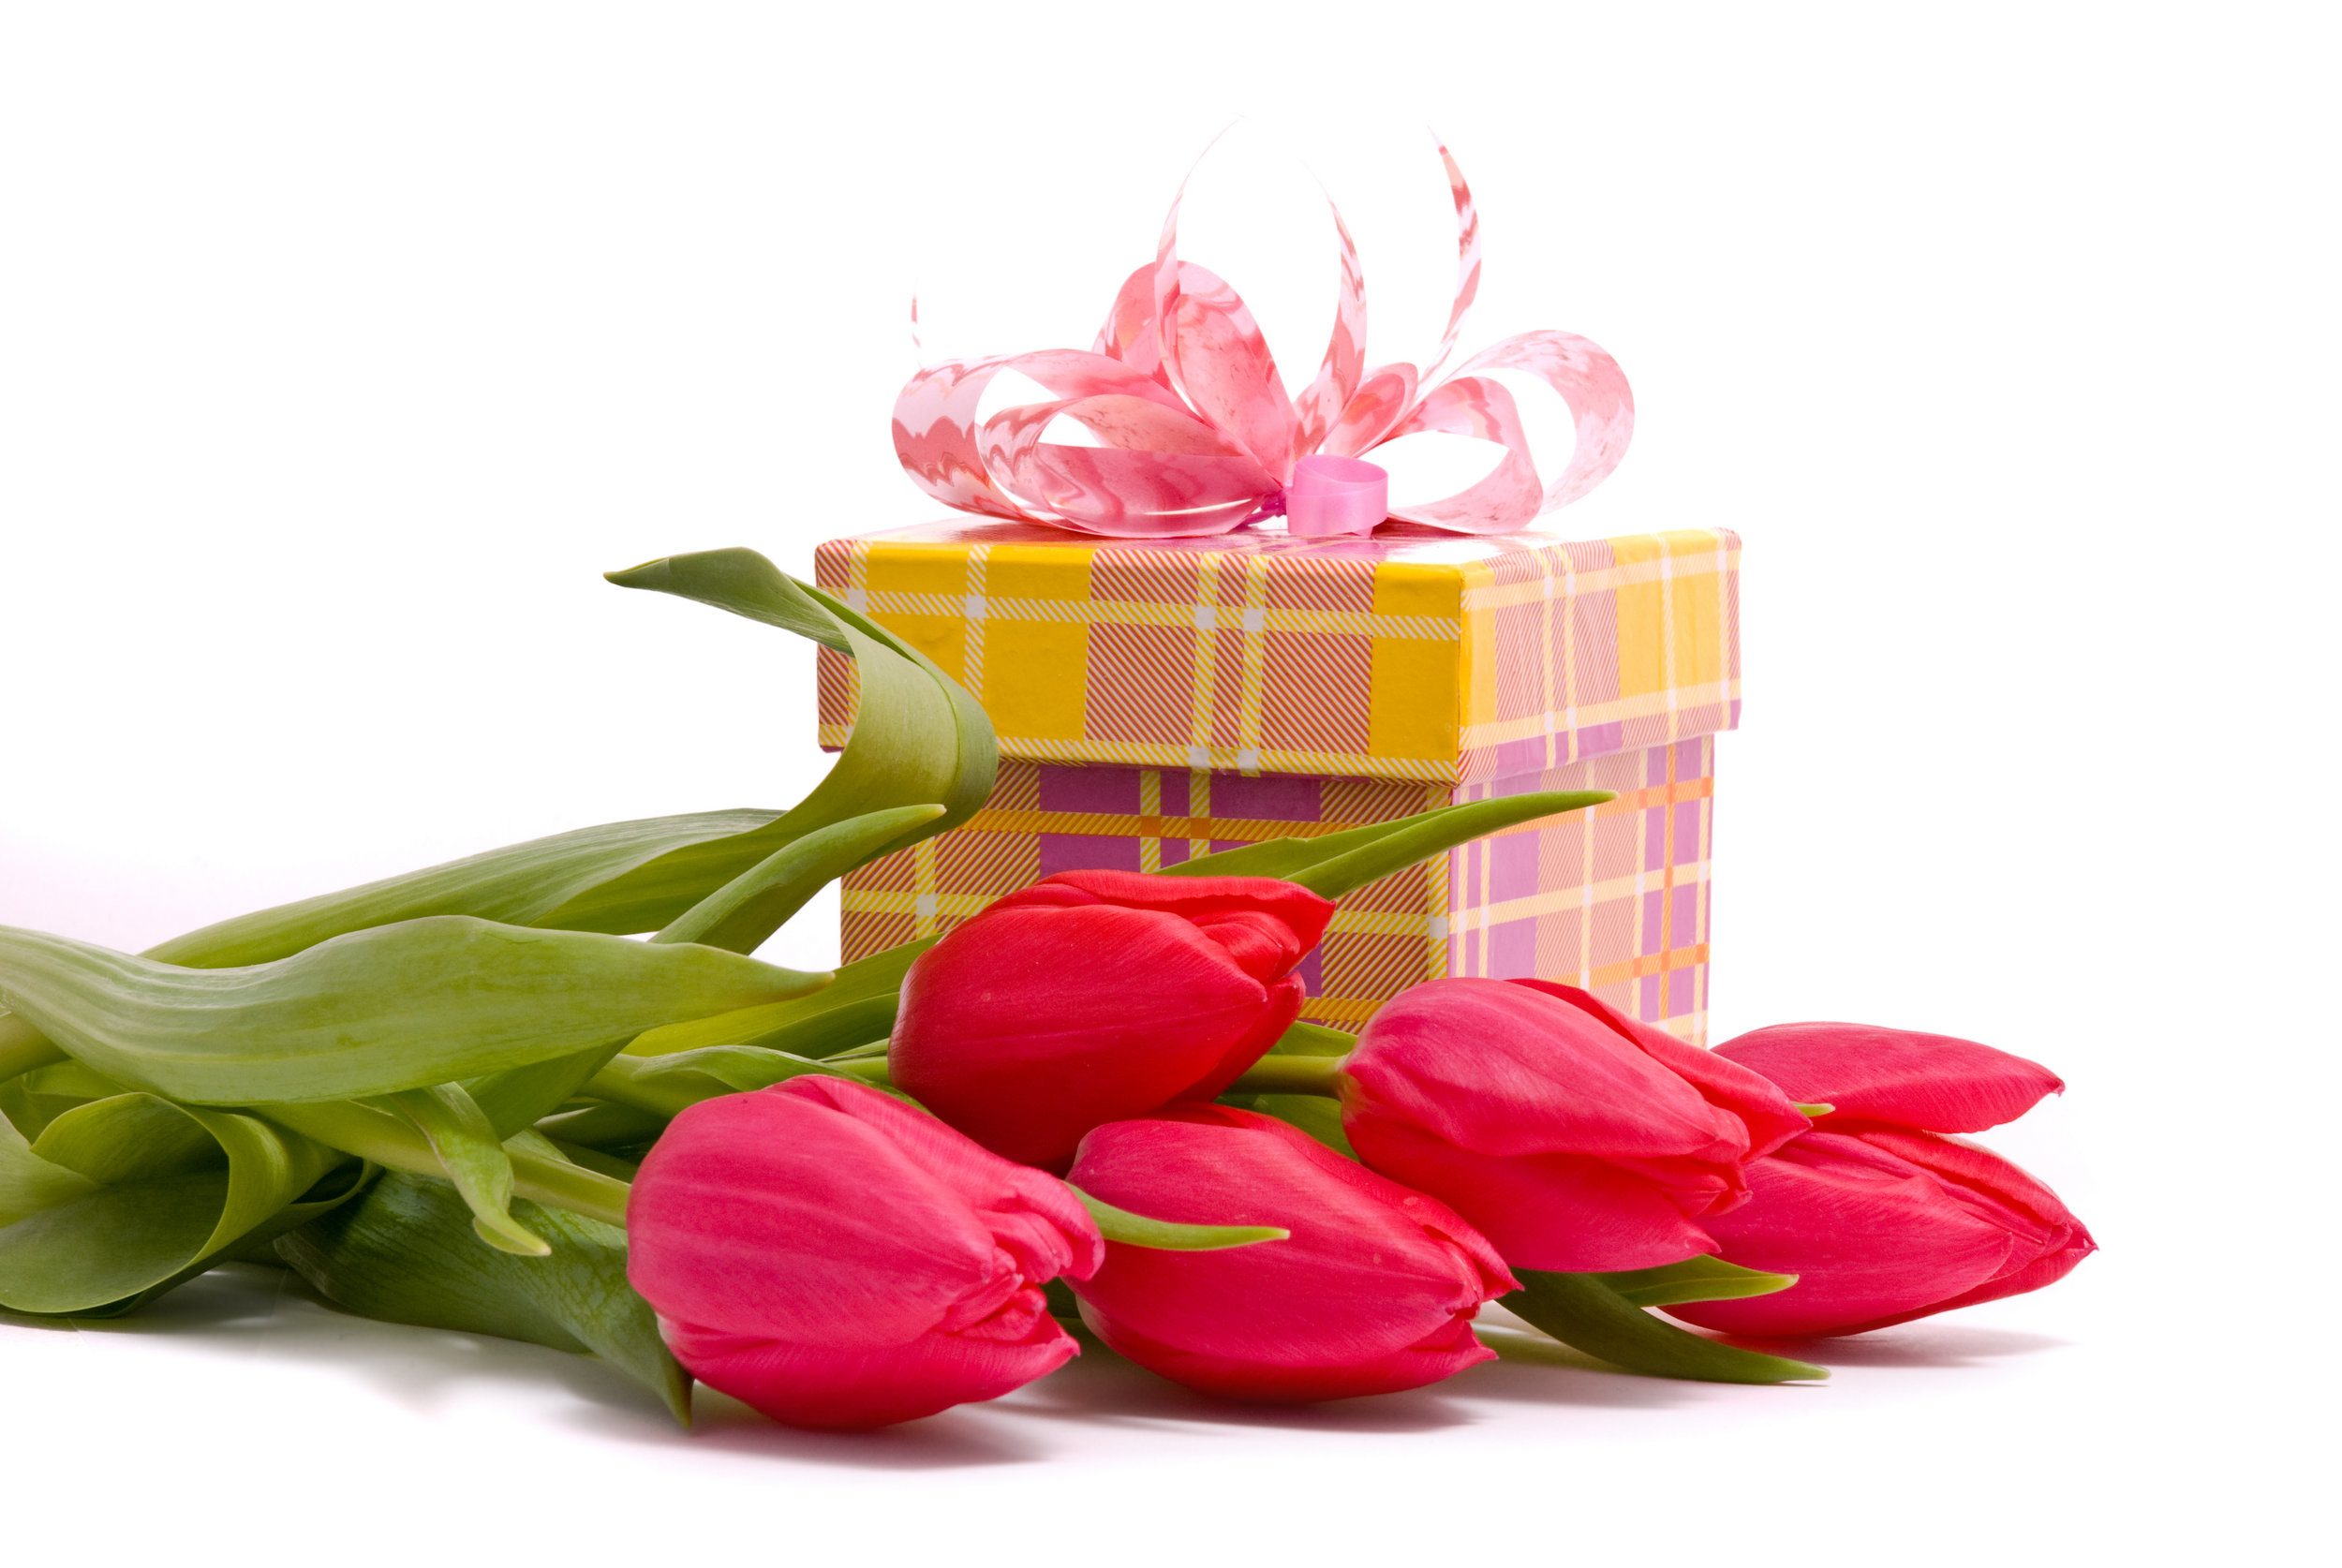 picture_of_flowers_and_gifts_hd_04.jpg